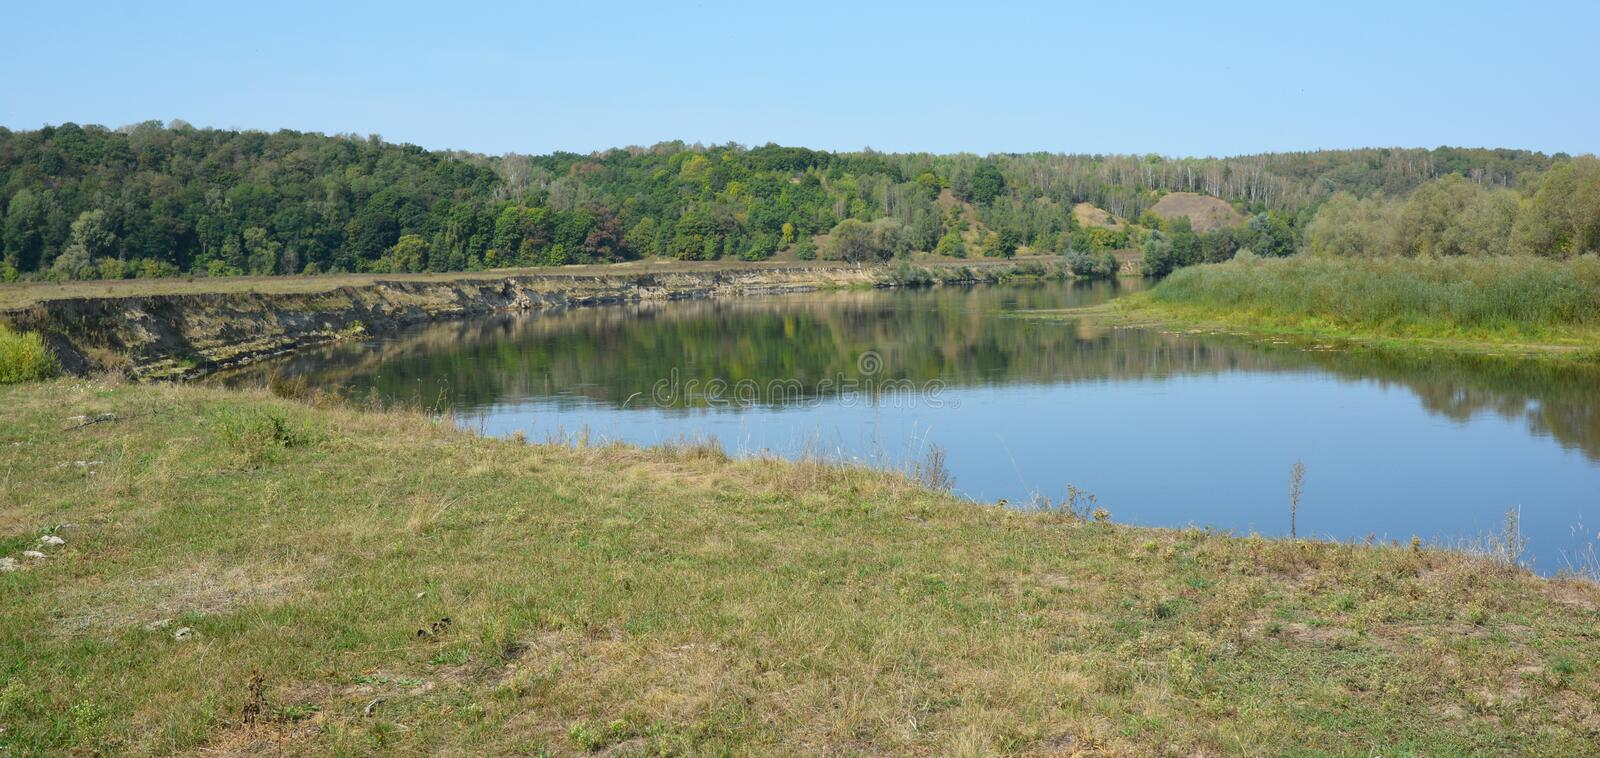 Panorama of Desna river near Mezynsky National Nature Park  in northern Ukraine. Photo stock photography